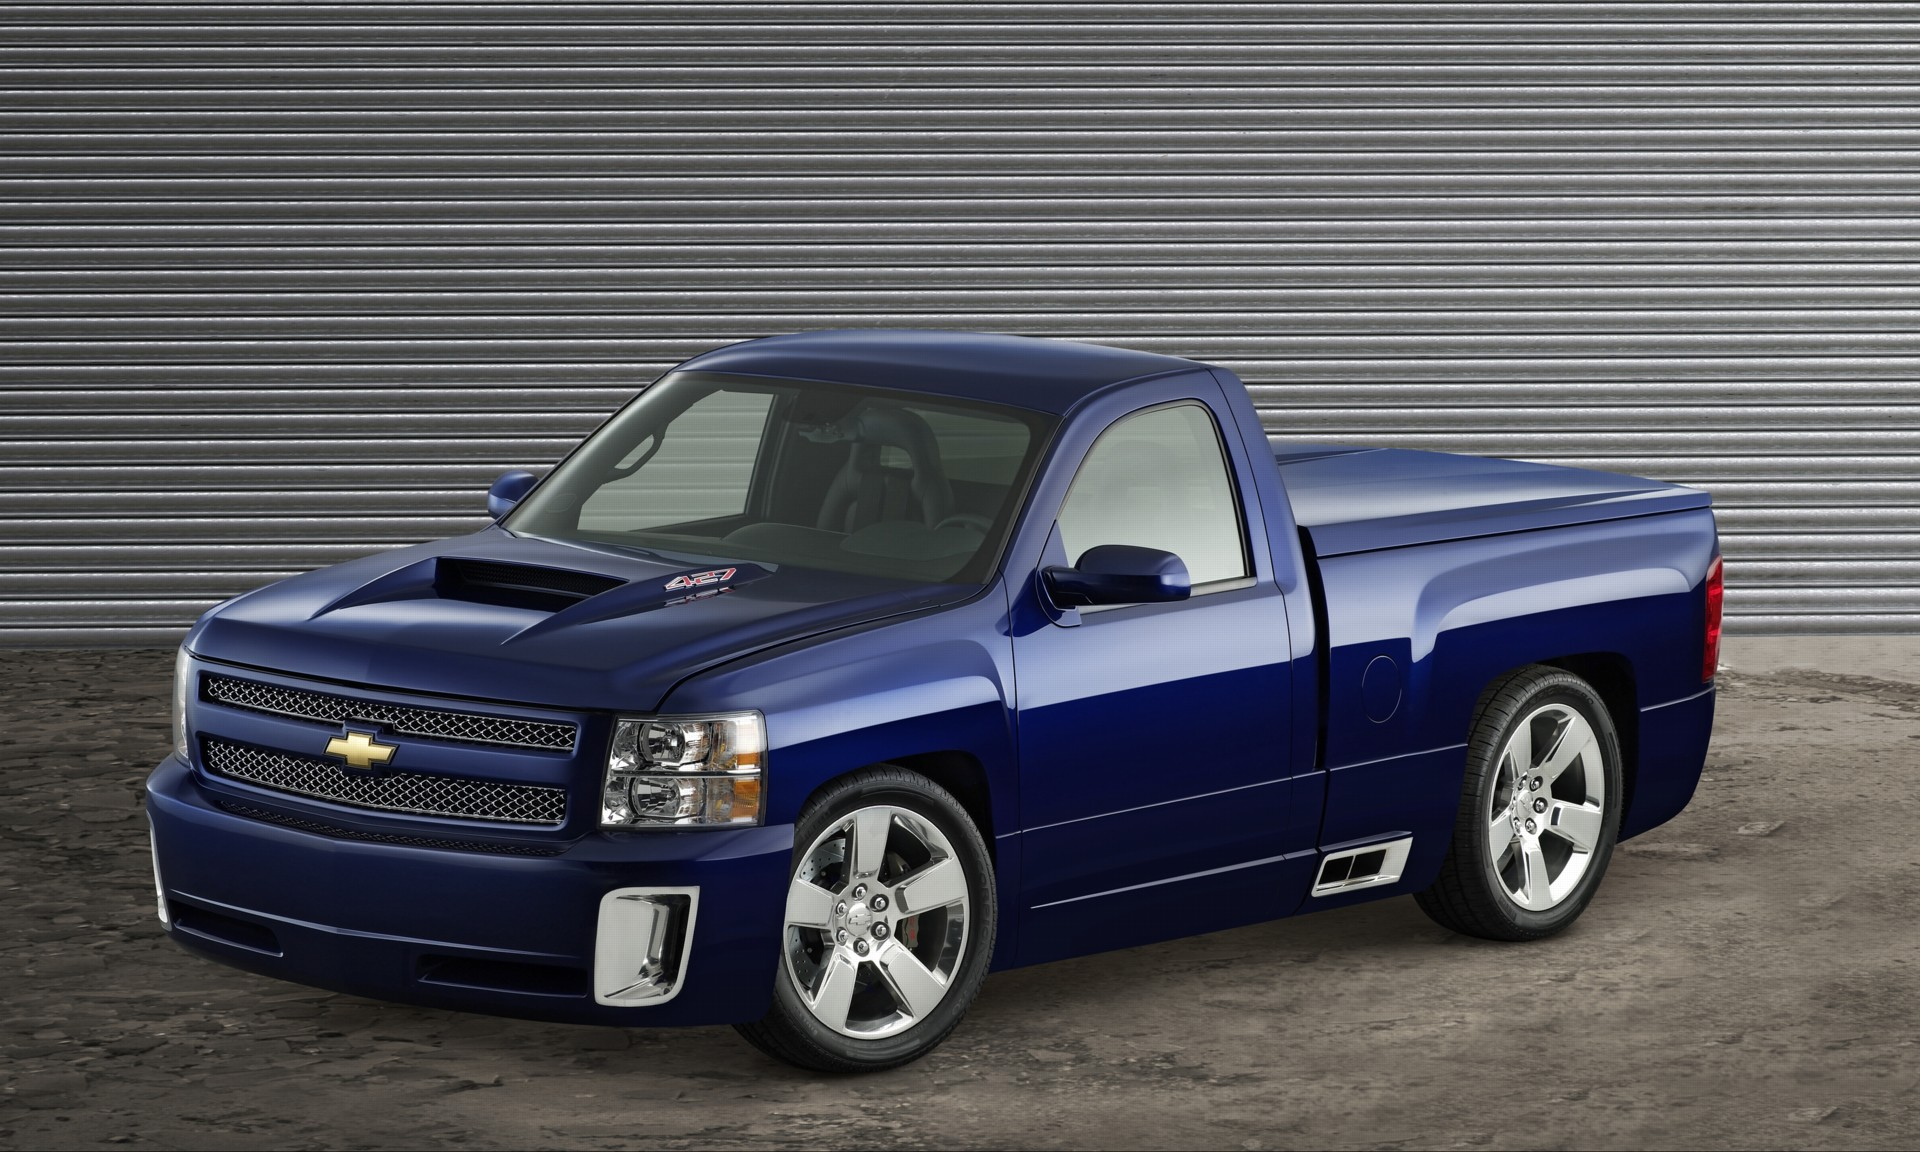 2006 chevrolet silverado 427 concept history pictures value auction sales research and news. Black Bedroom Furniture Sets. Home Design Ideas